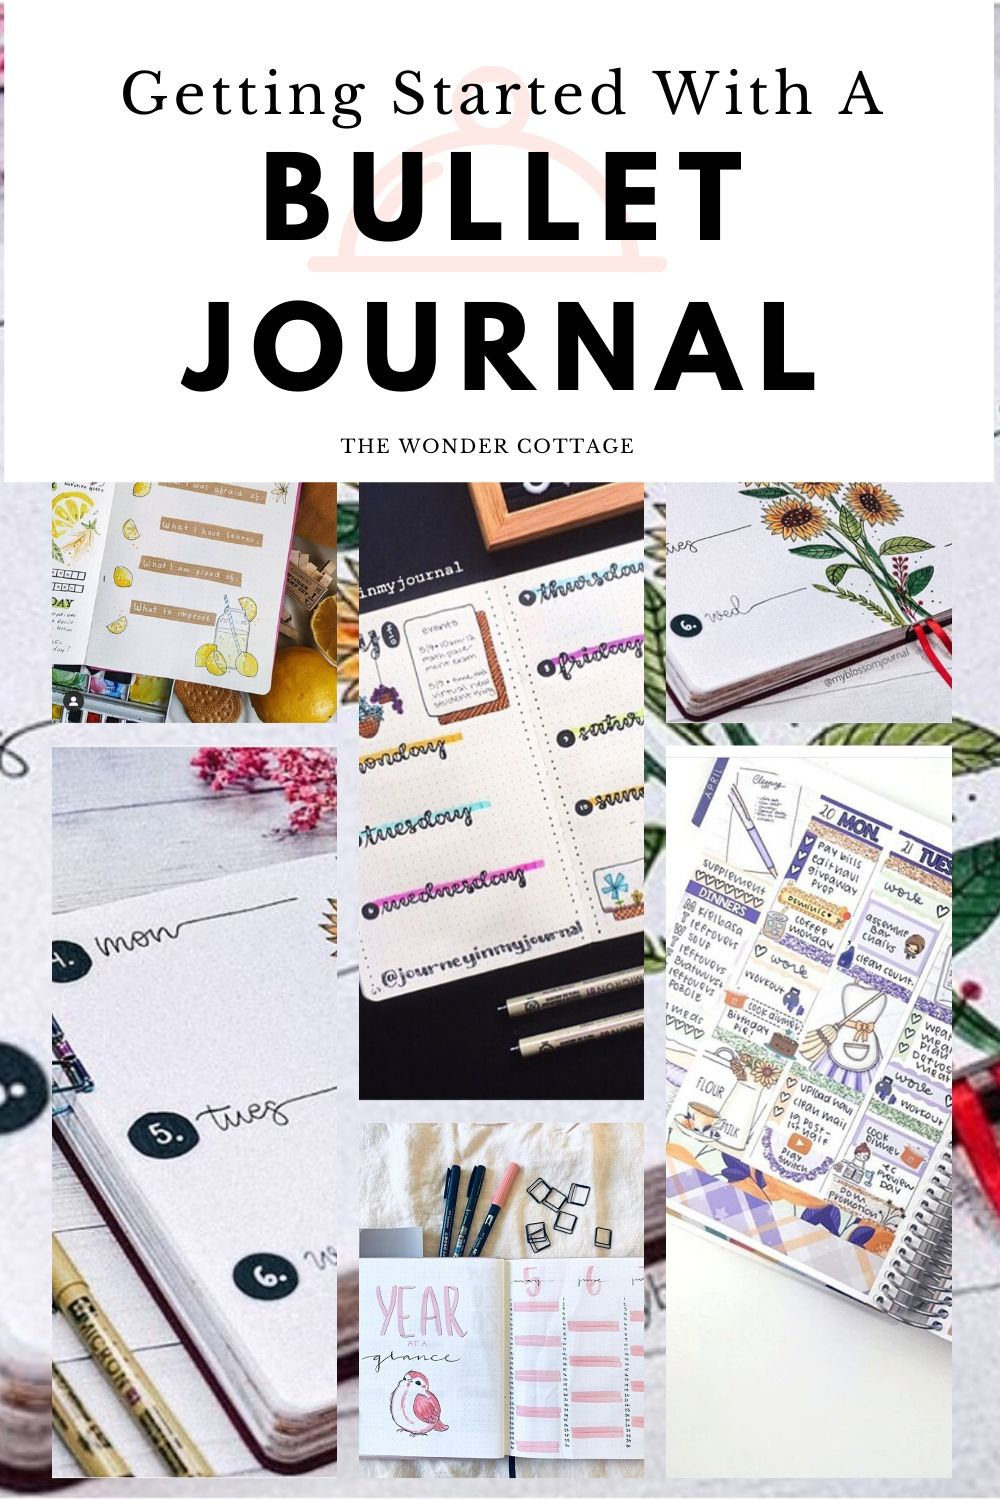 Getting started with bullet journal